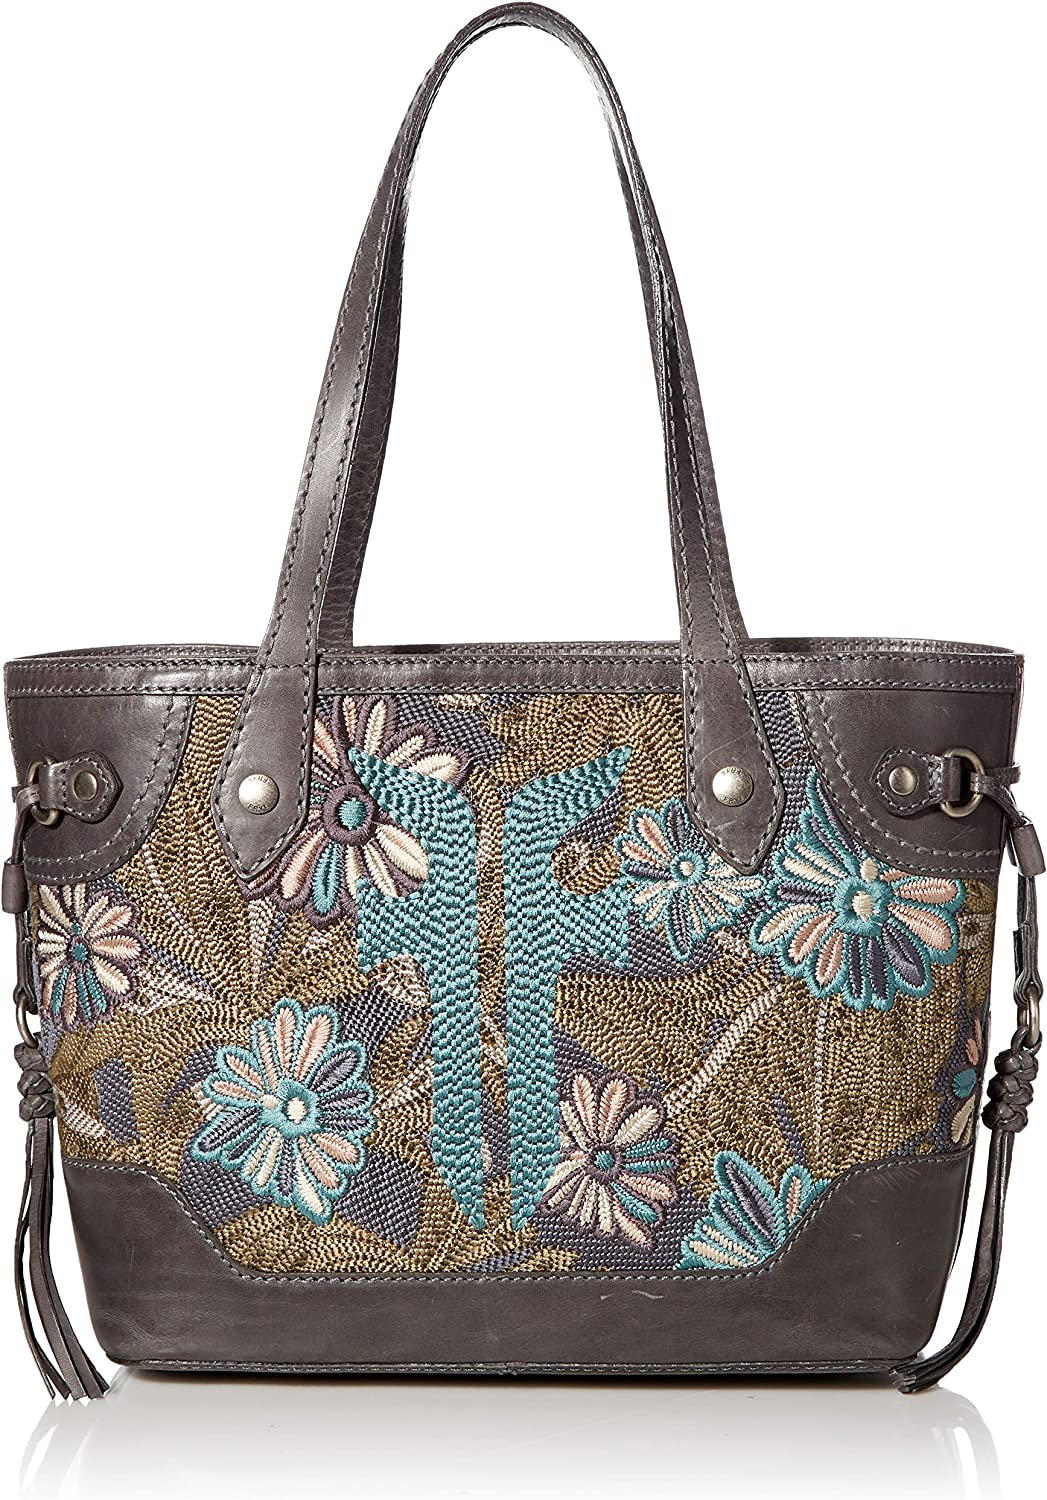 Frye Melissa Embroidery Carryall